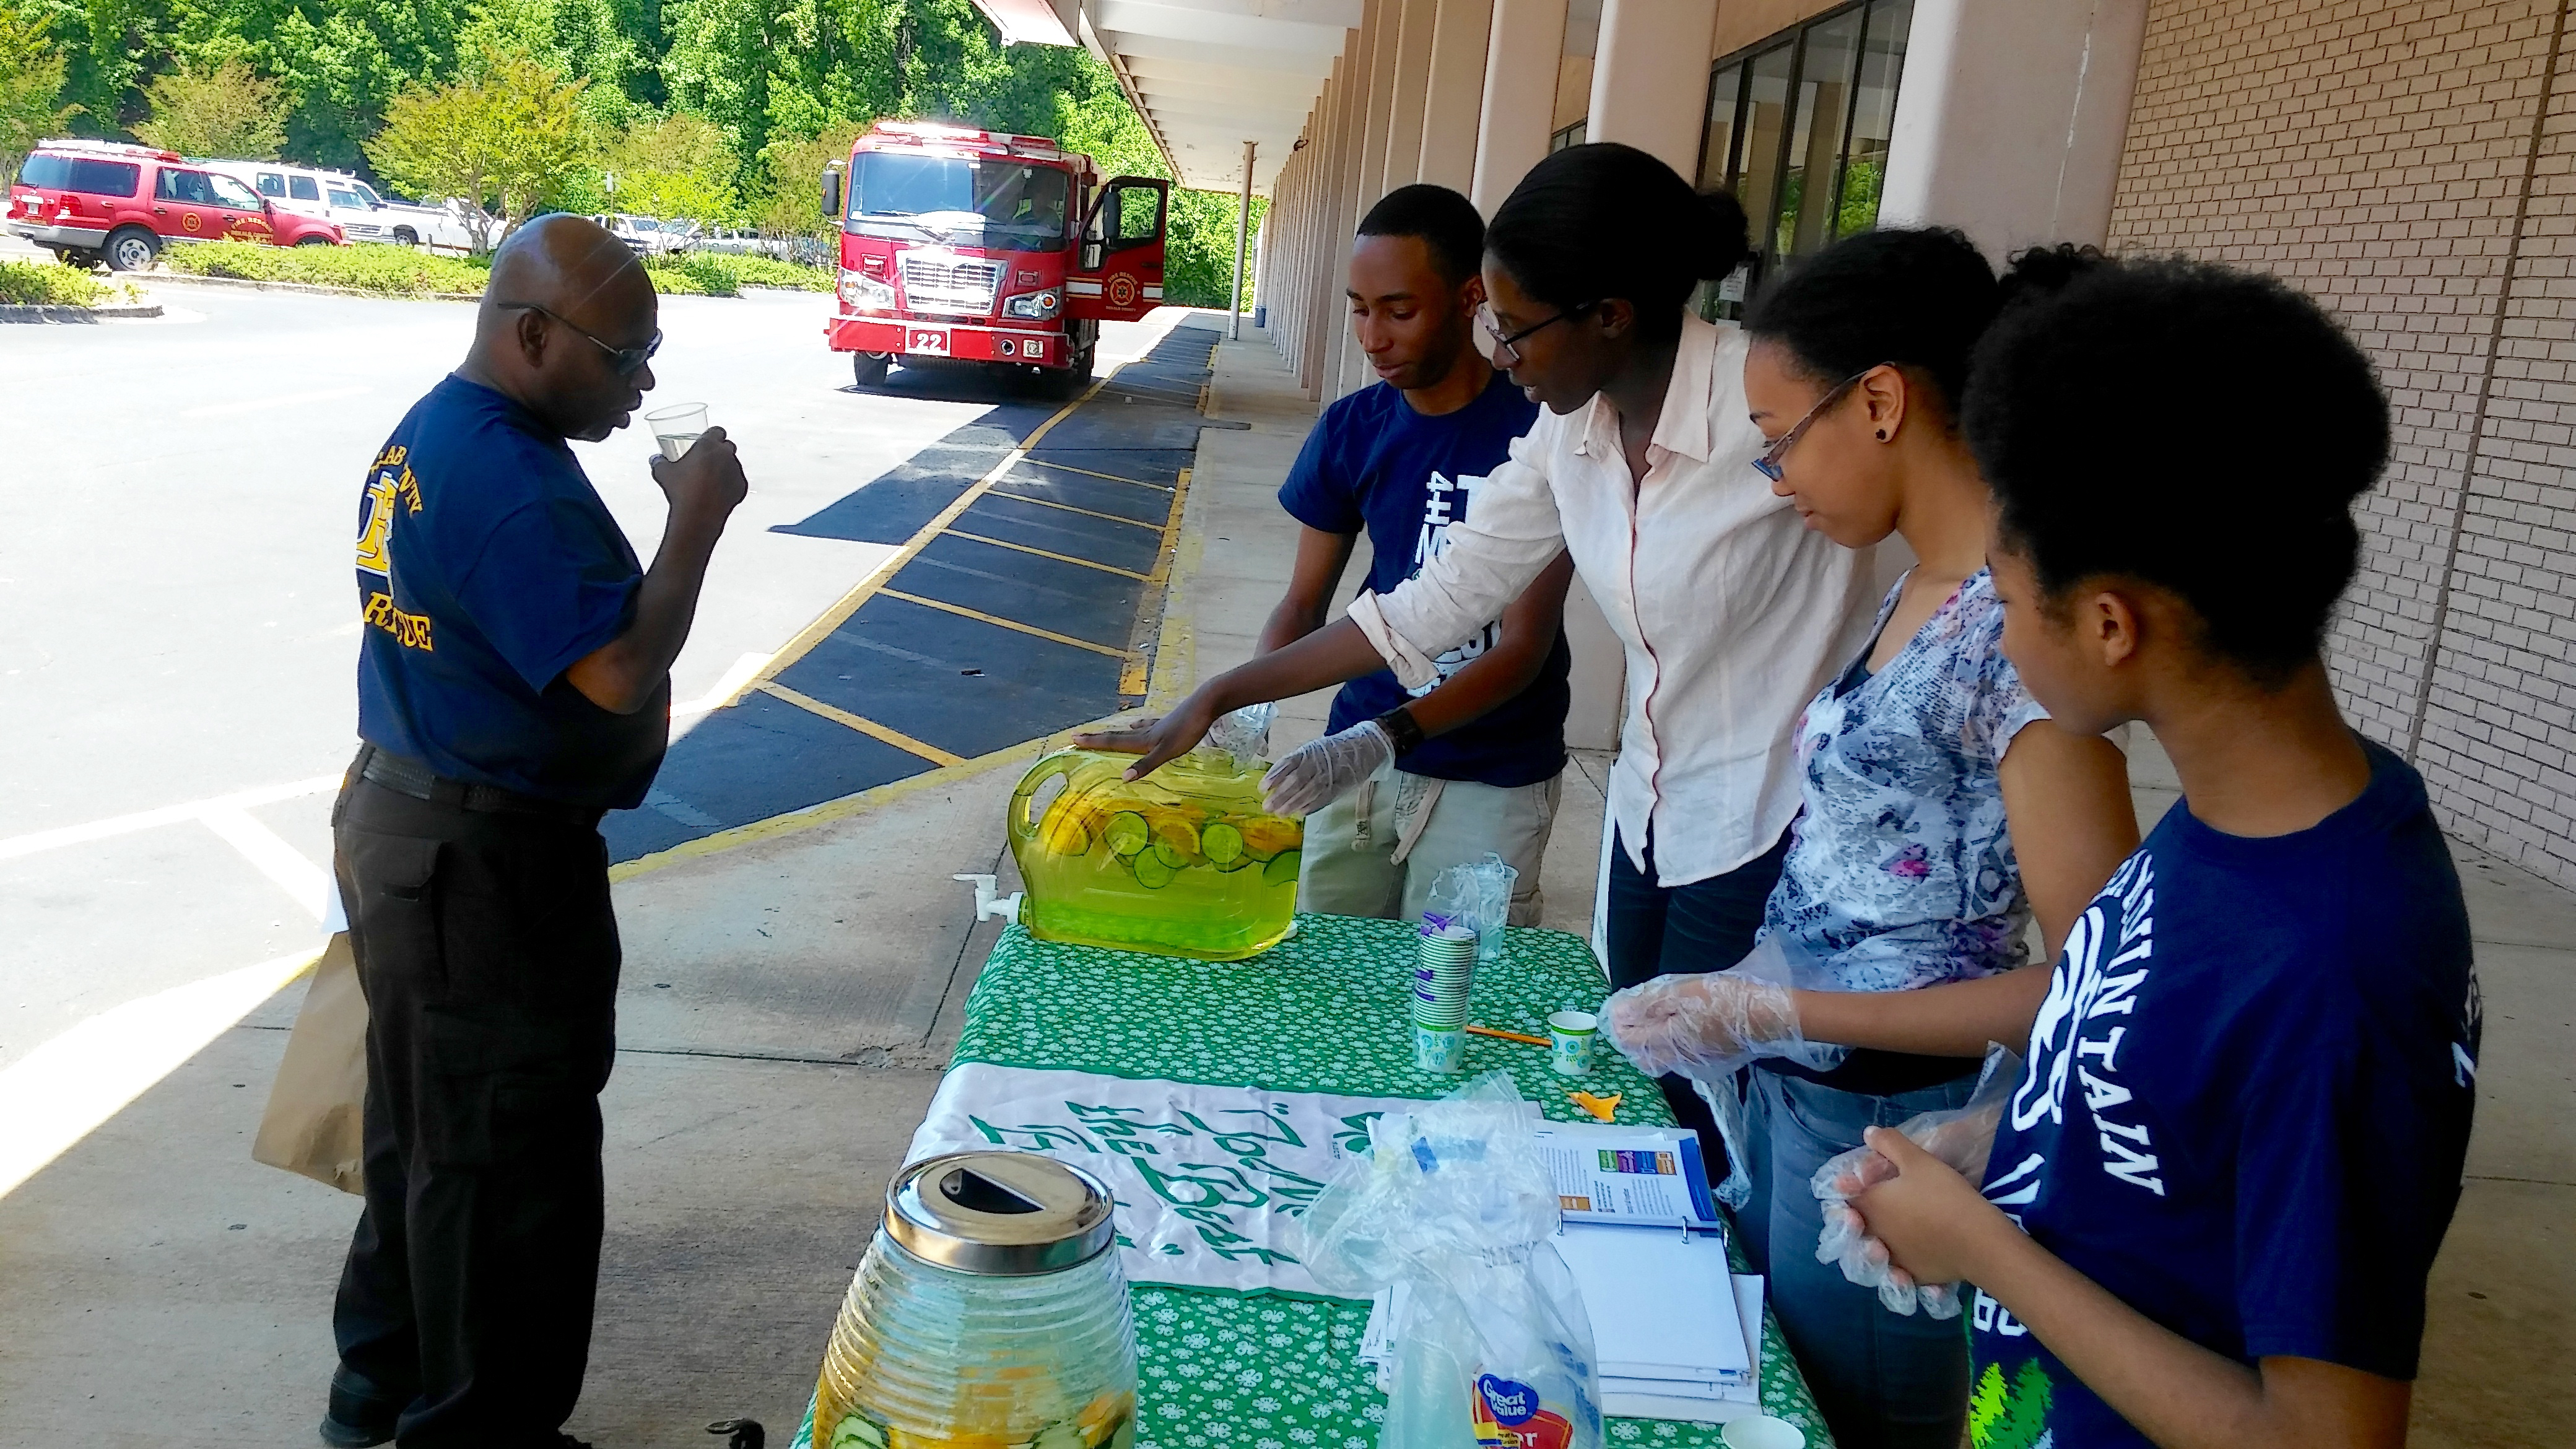 Decals County 4-H Club members Artis Trice, Nia Morrison, Chante' Lively and Claudia Thompson serve fruit infused water during the record-breaking first week of the DeKalb Mobile Market's 2016 season.